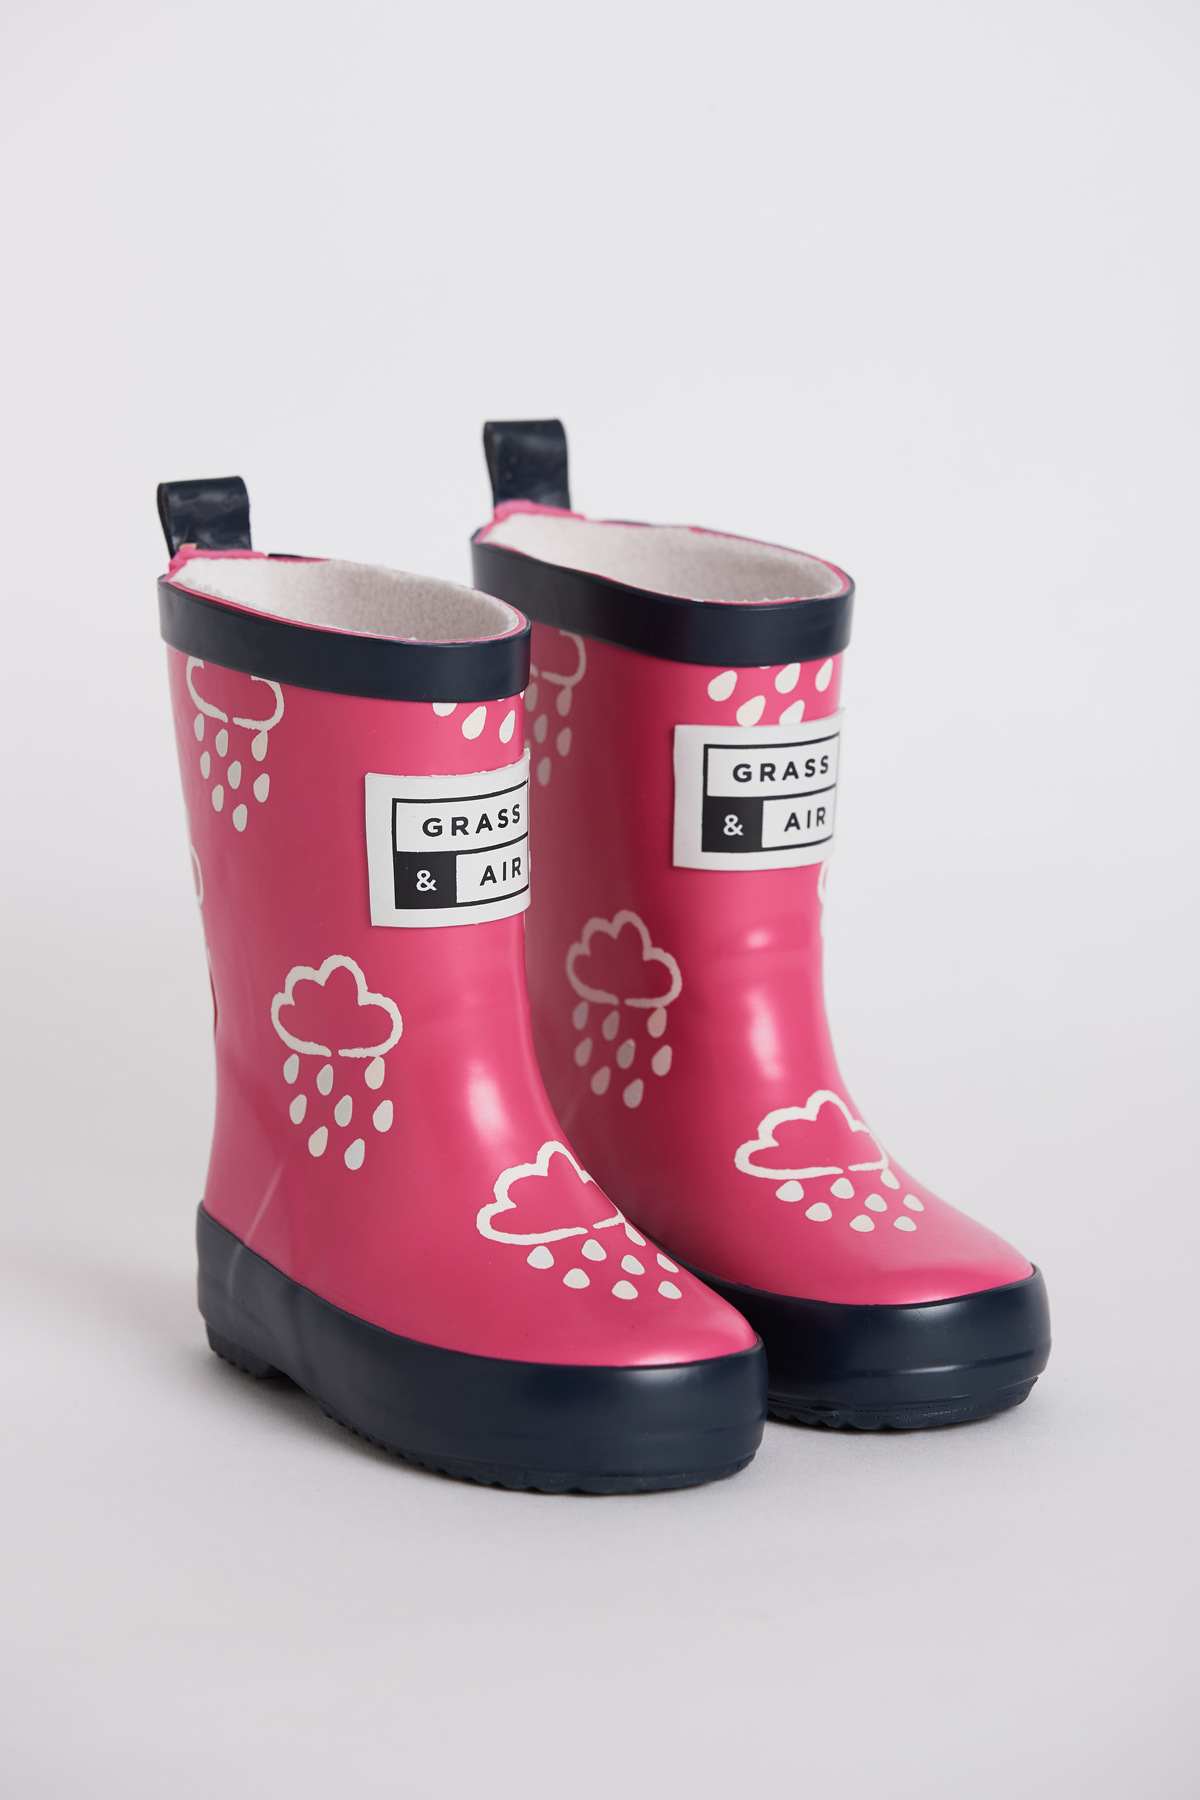 Grass & Air Colour Revealing Wellies - Pink